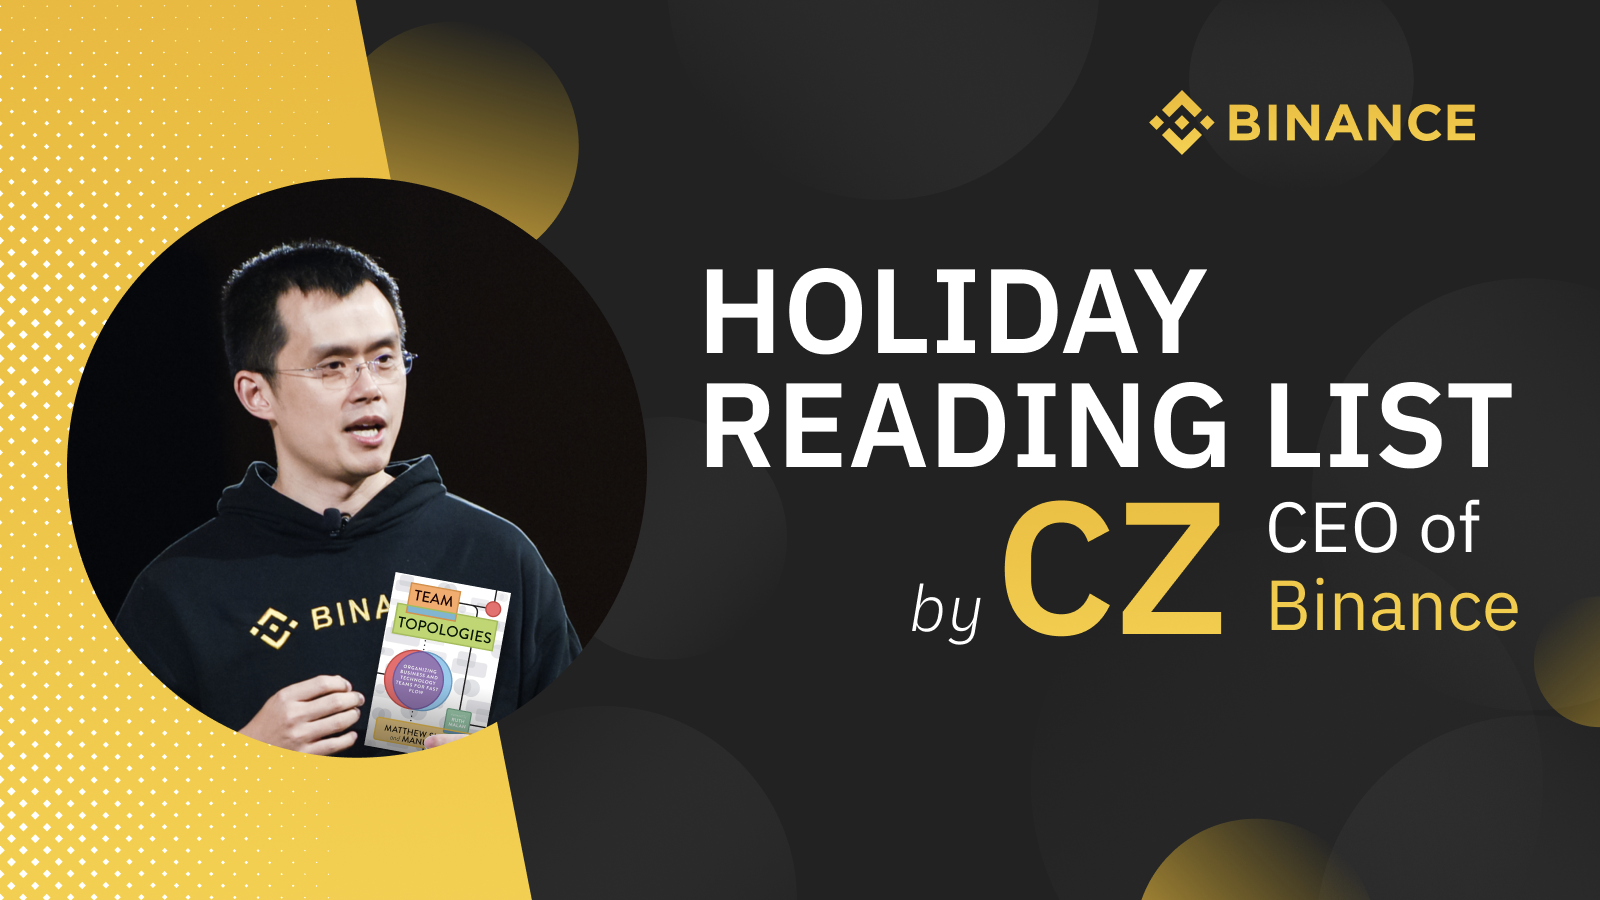 Cz S 10 Book Reading List For The Holidays Binance Blog